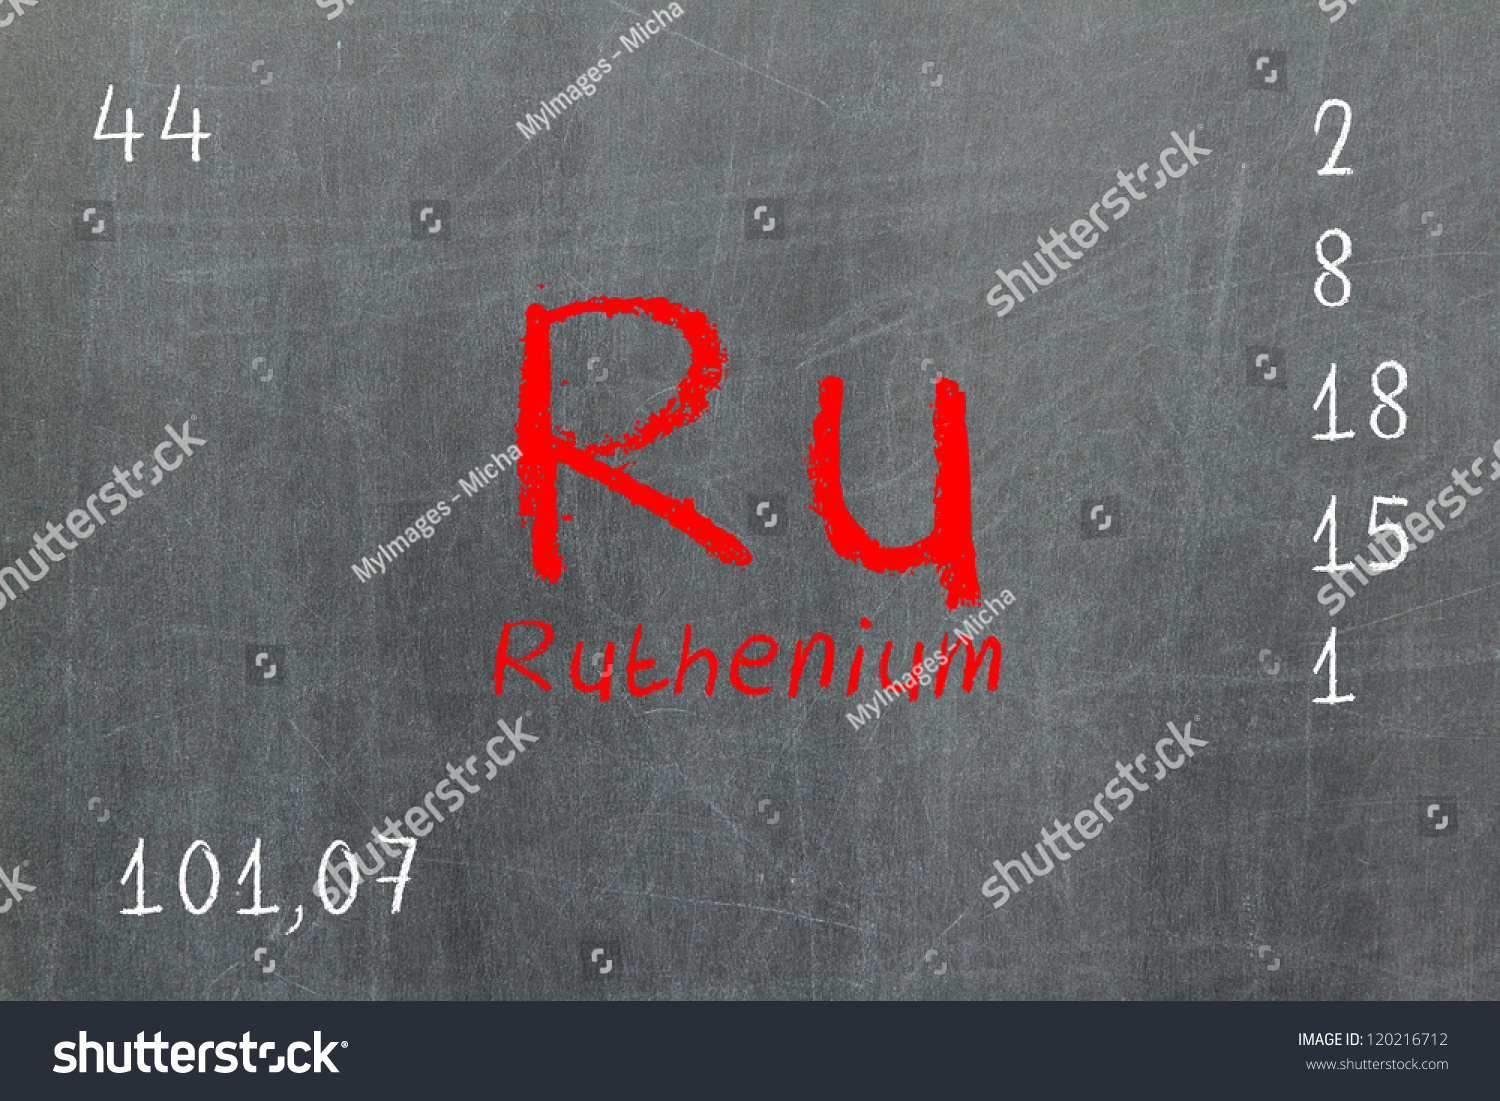 Isolated blackboard periodic table ruthenium chemistry stock isolated blackboard with periodic table ruthenium chemistry gamestrikefo Choice Image